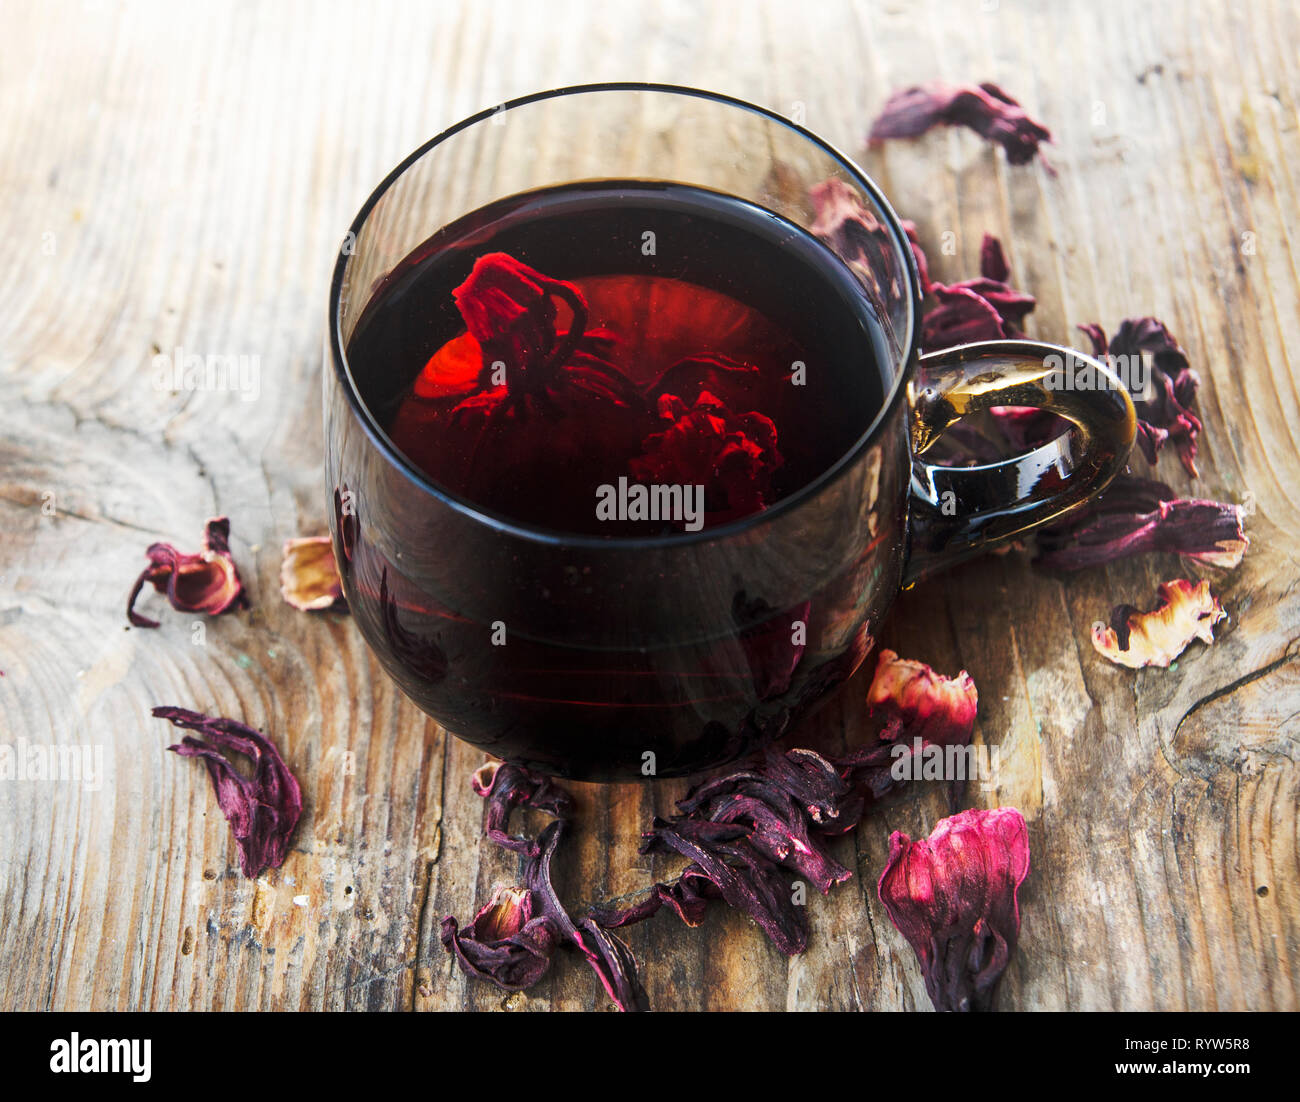 Hibiscus Tea In Teacup With Dry Hibiscus Flower Leaves Organic